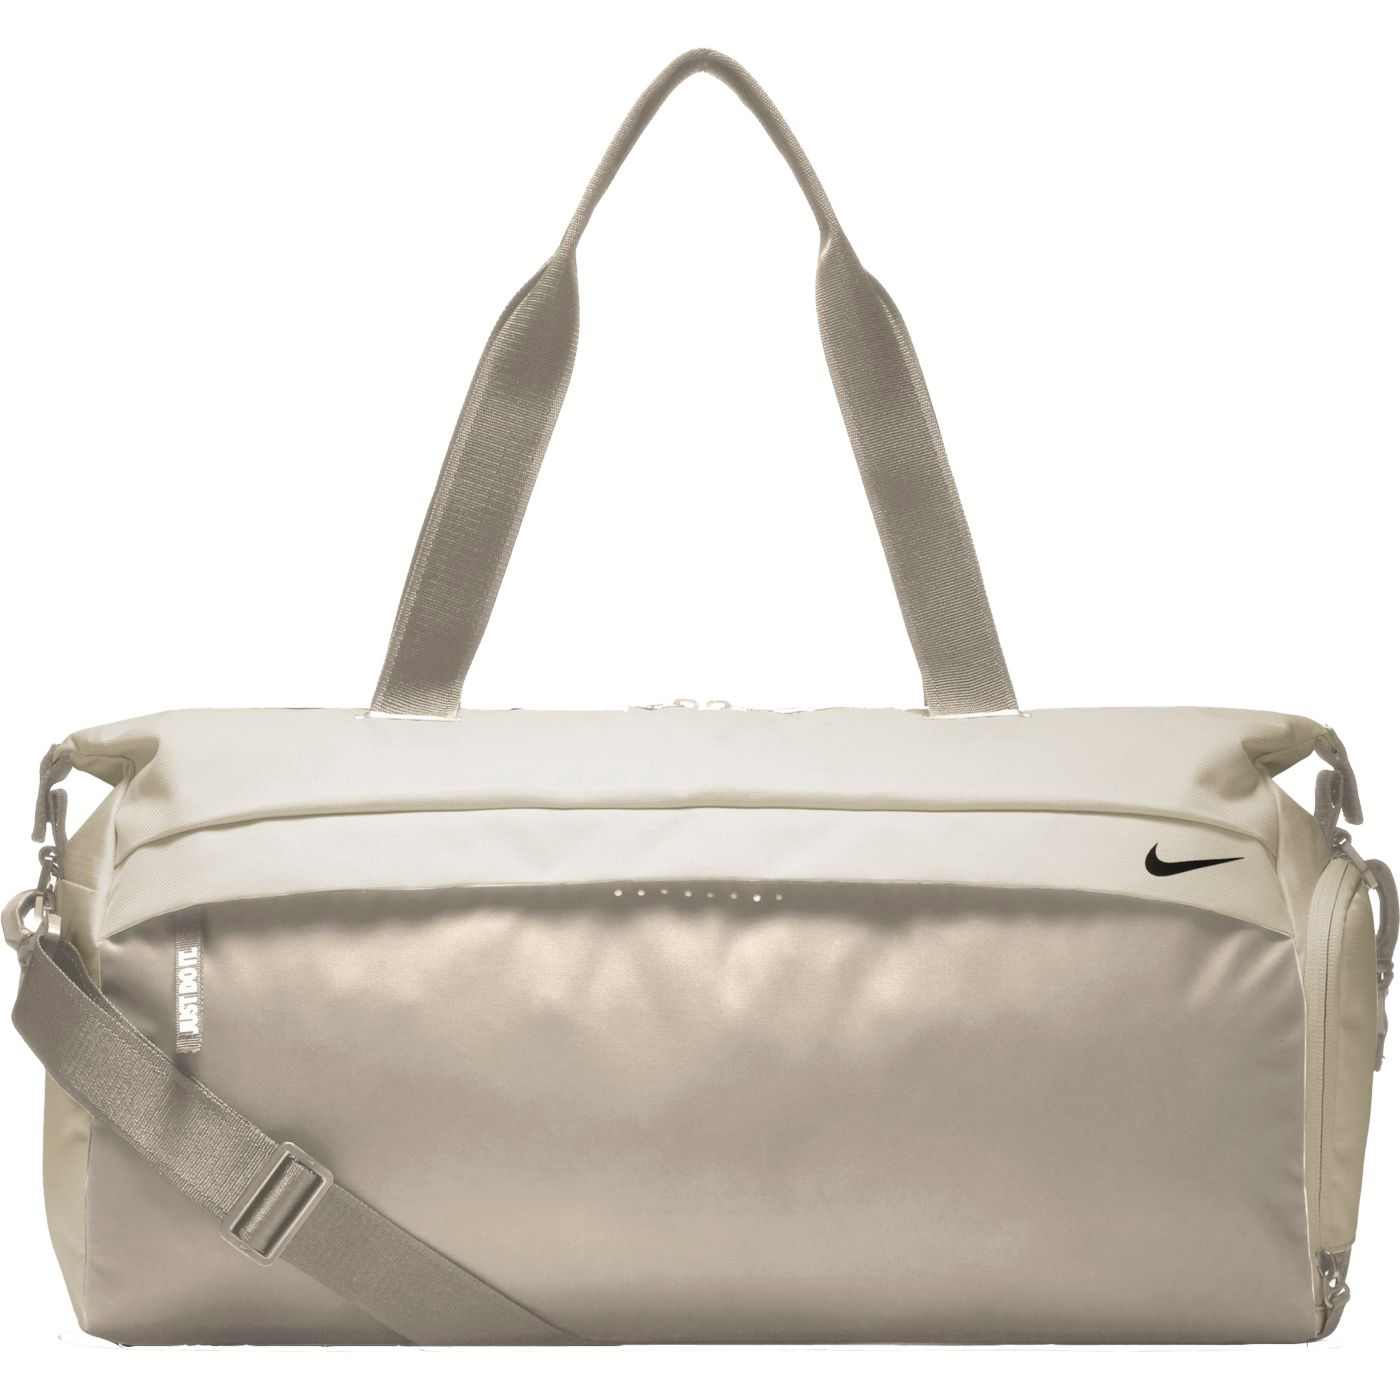 Nike Women's Radiate Training Club Bag